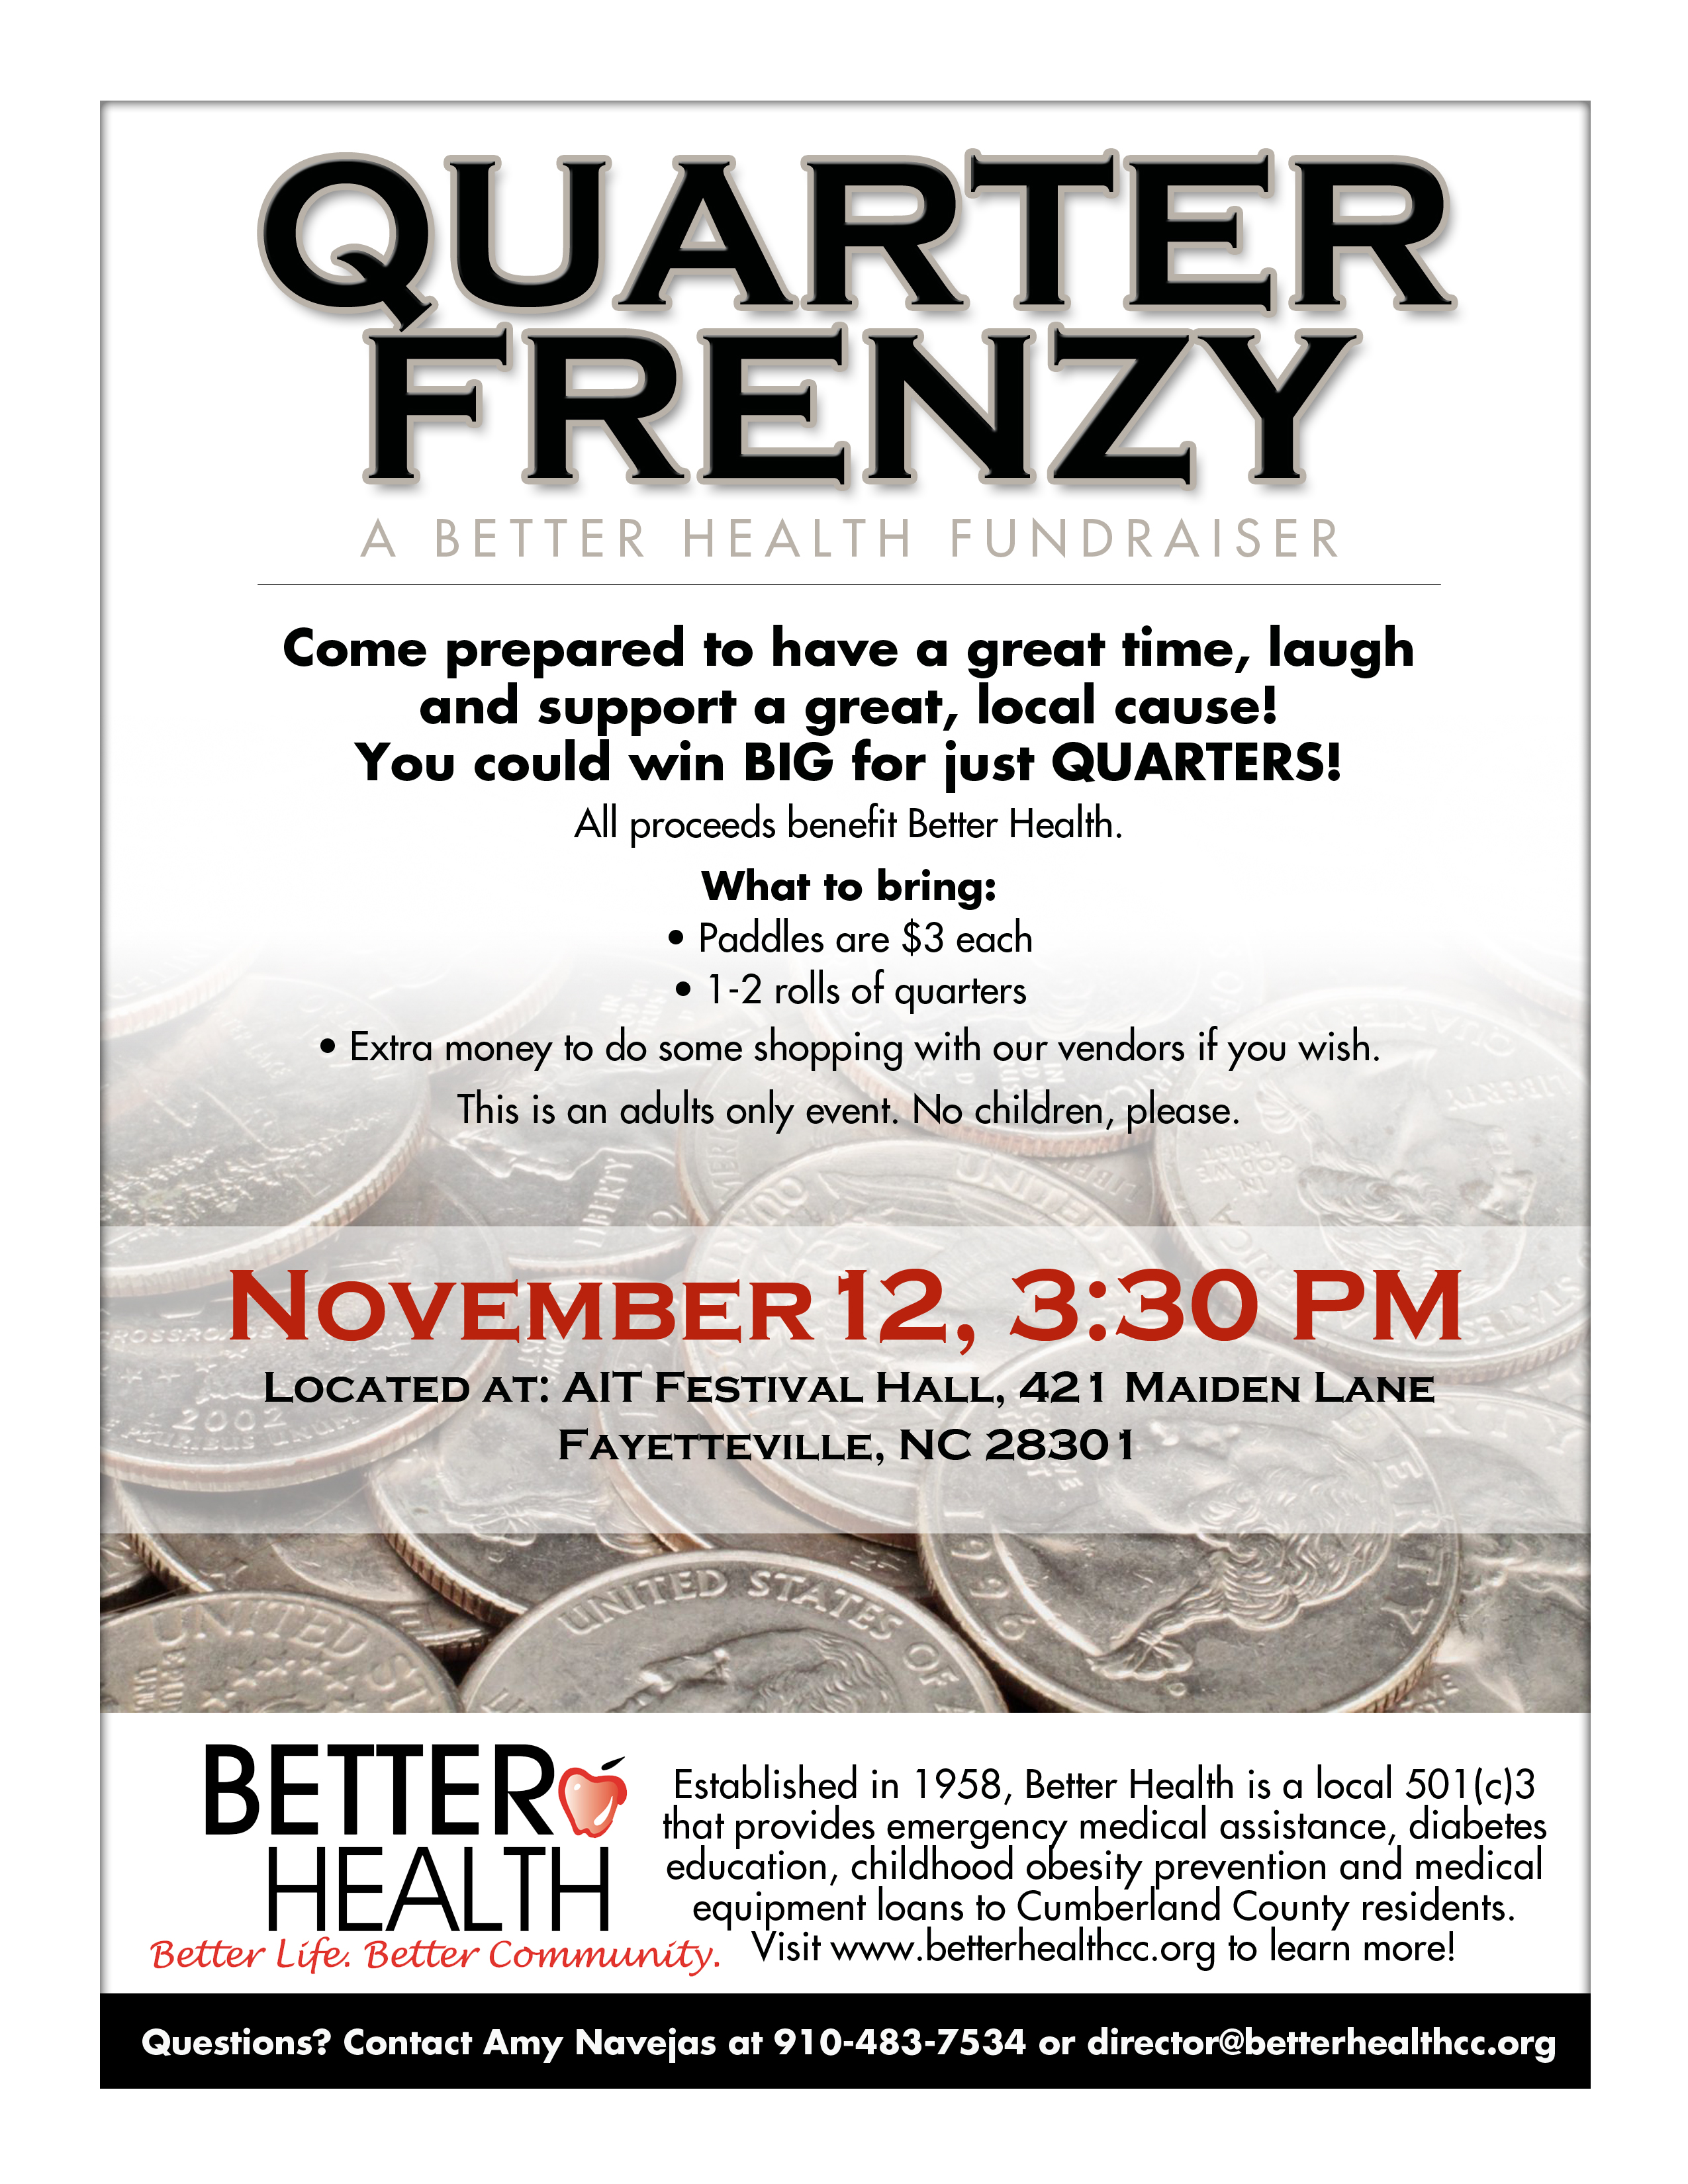 Quarter Frenzy to benefit Better Health